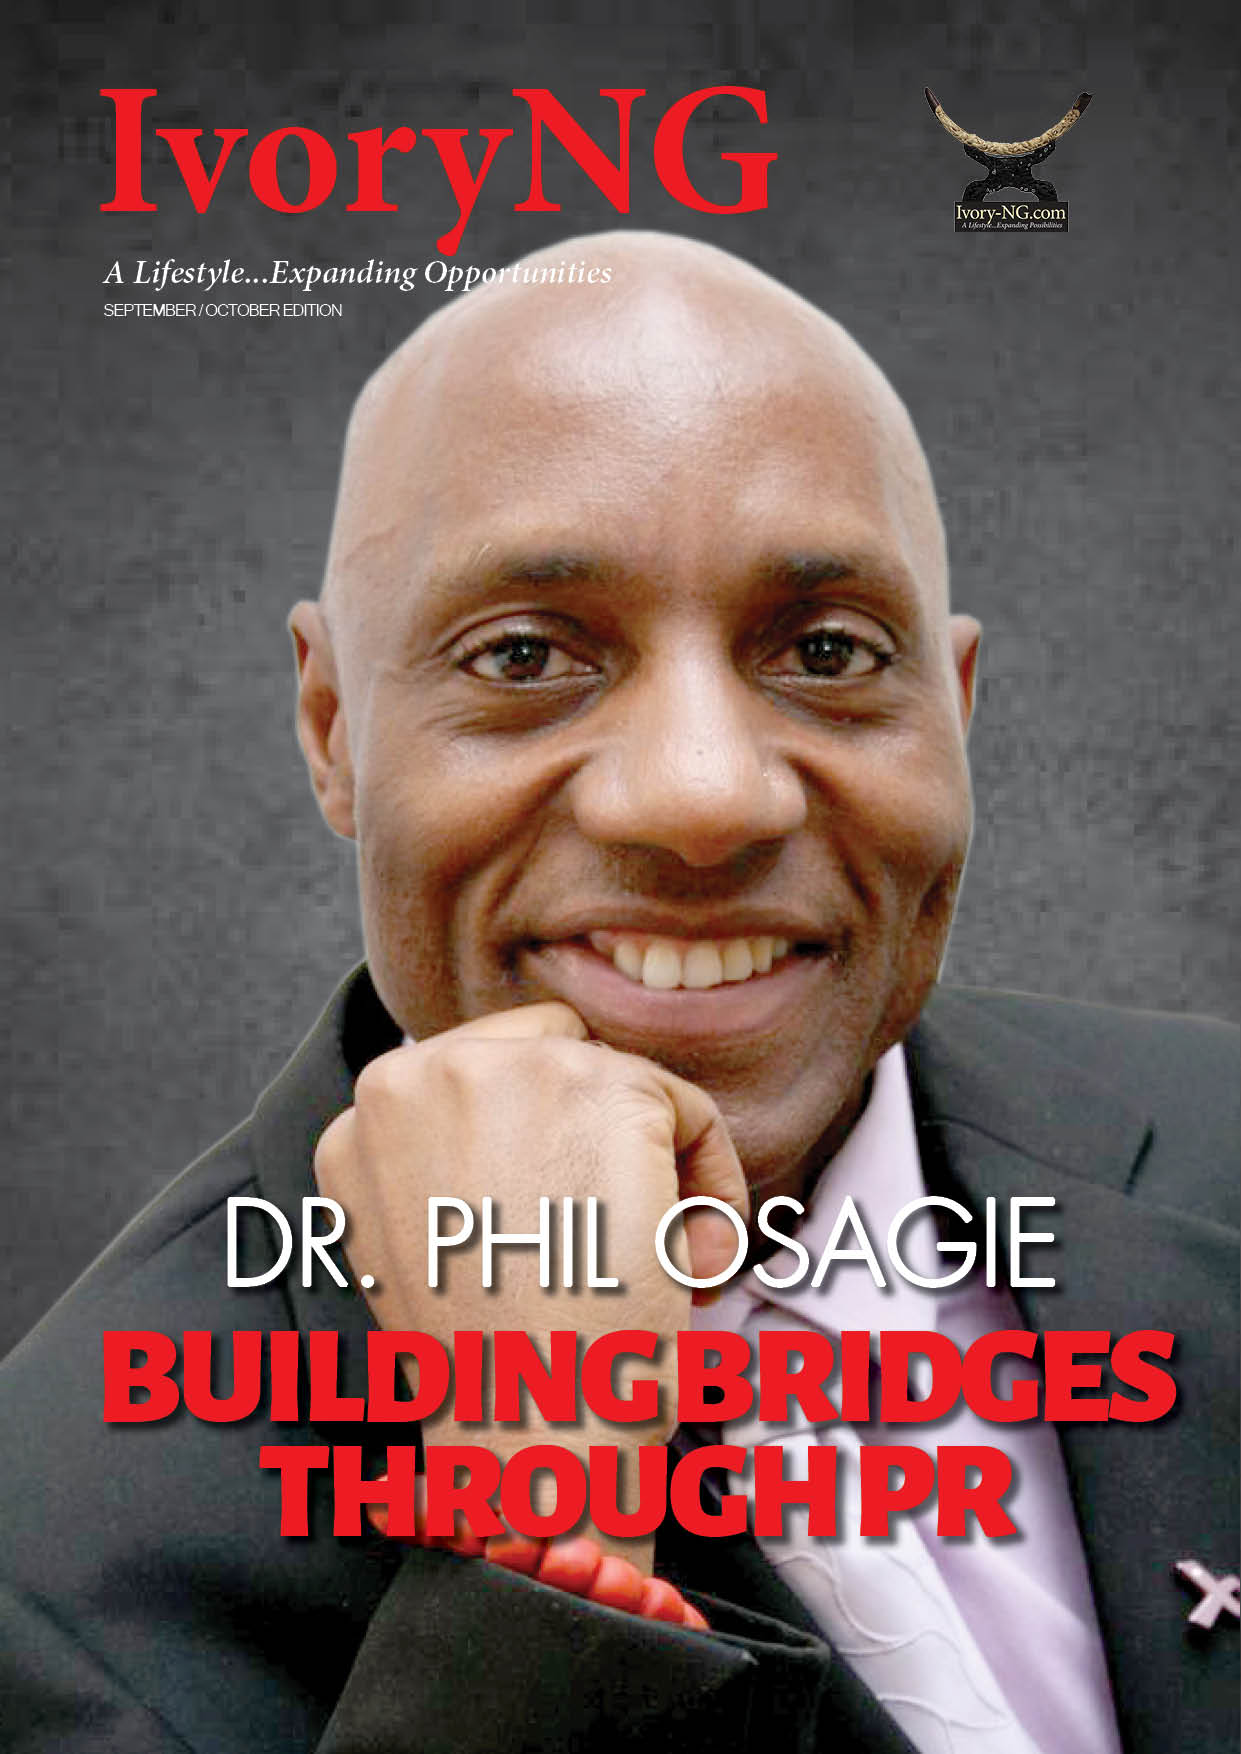 Dr. Phil Osagie: Building Bridges Through PR